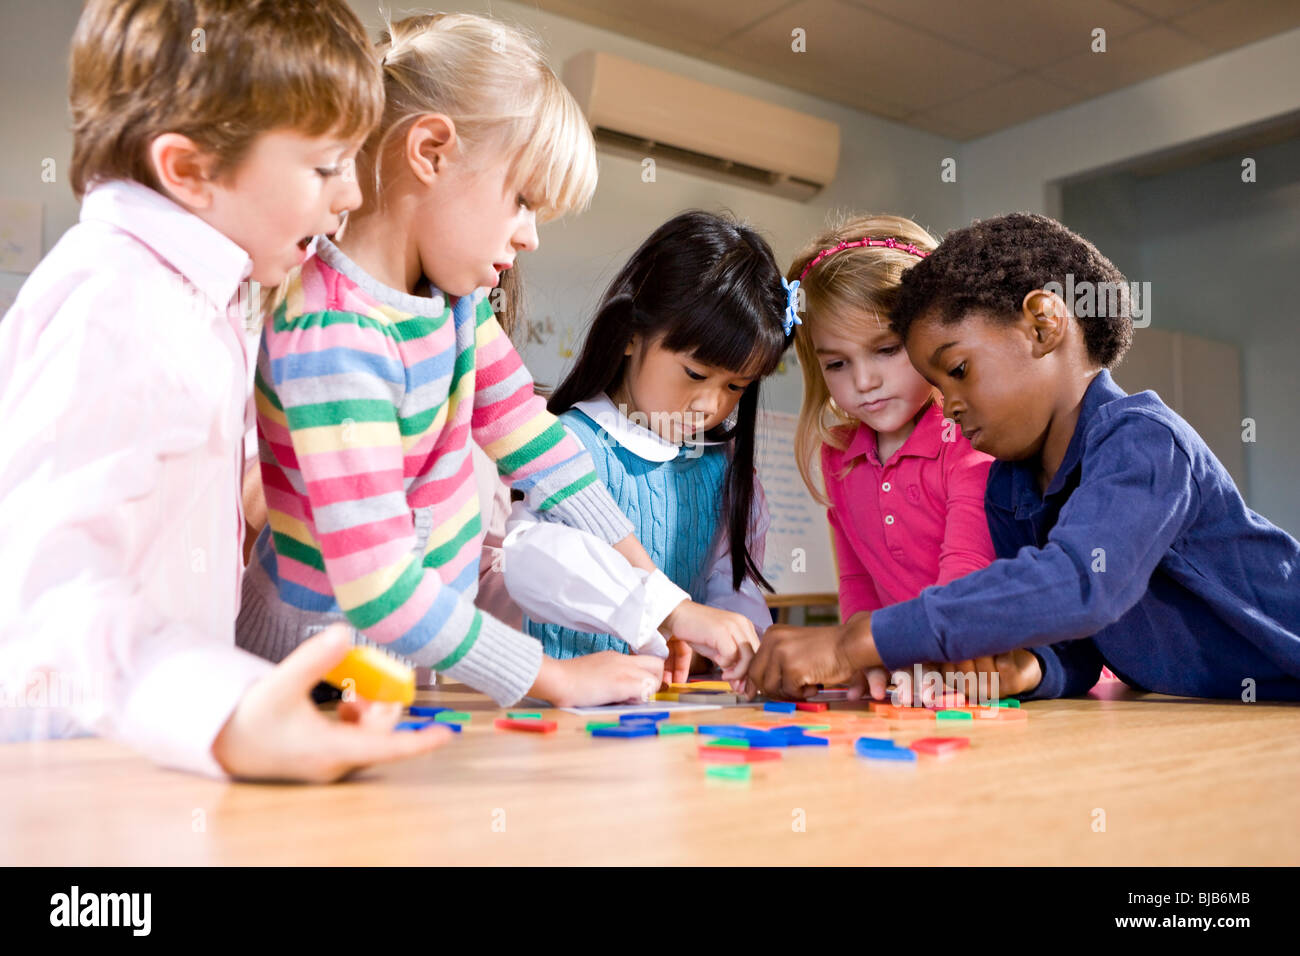 Preschool Children Working Together On Puzzle Stock Photo